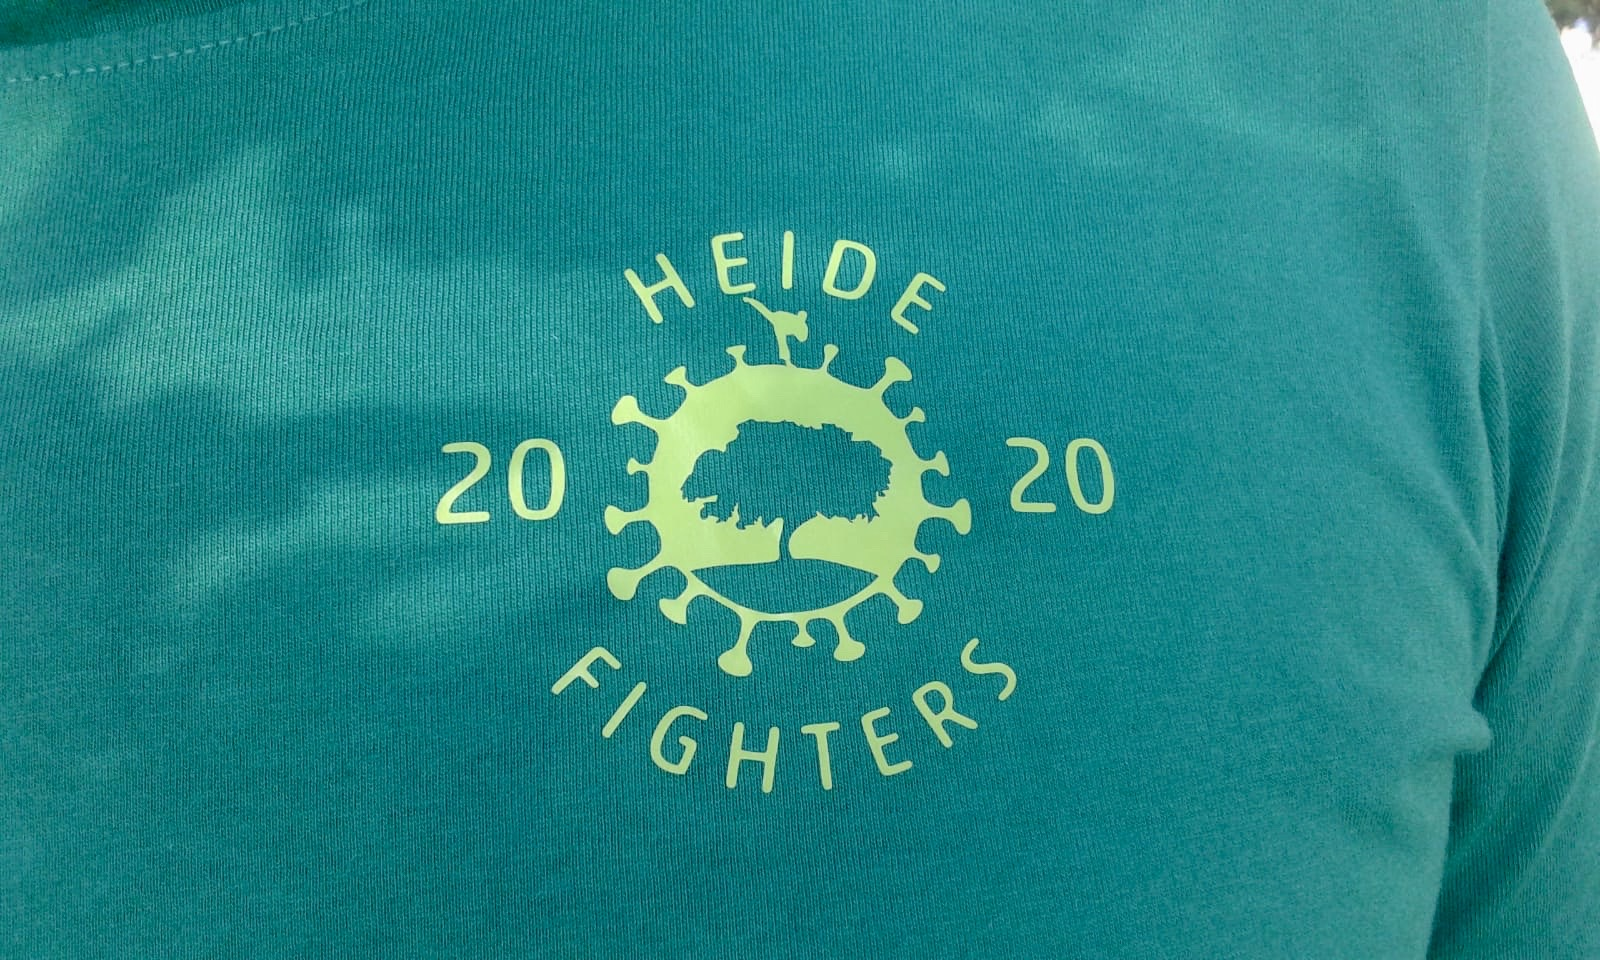 Heidefighters